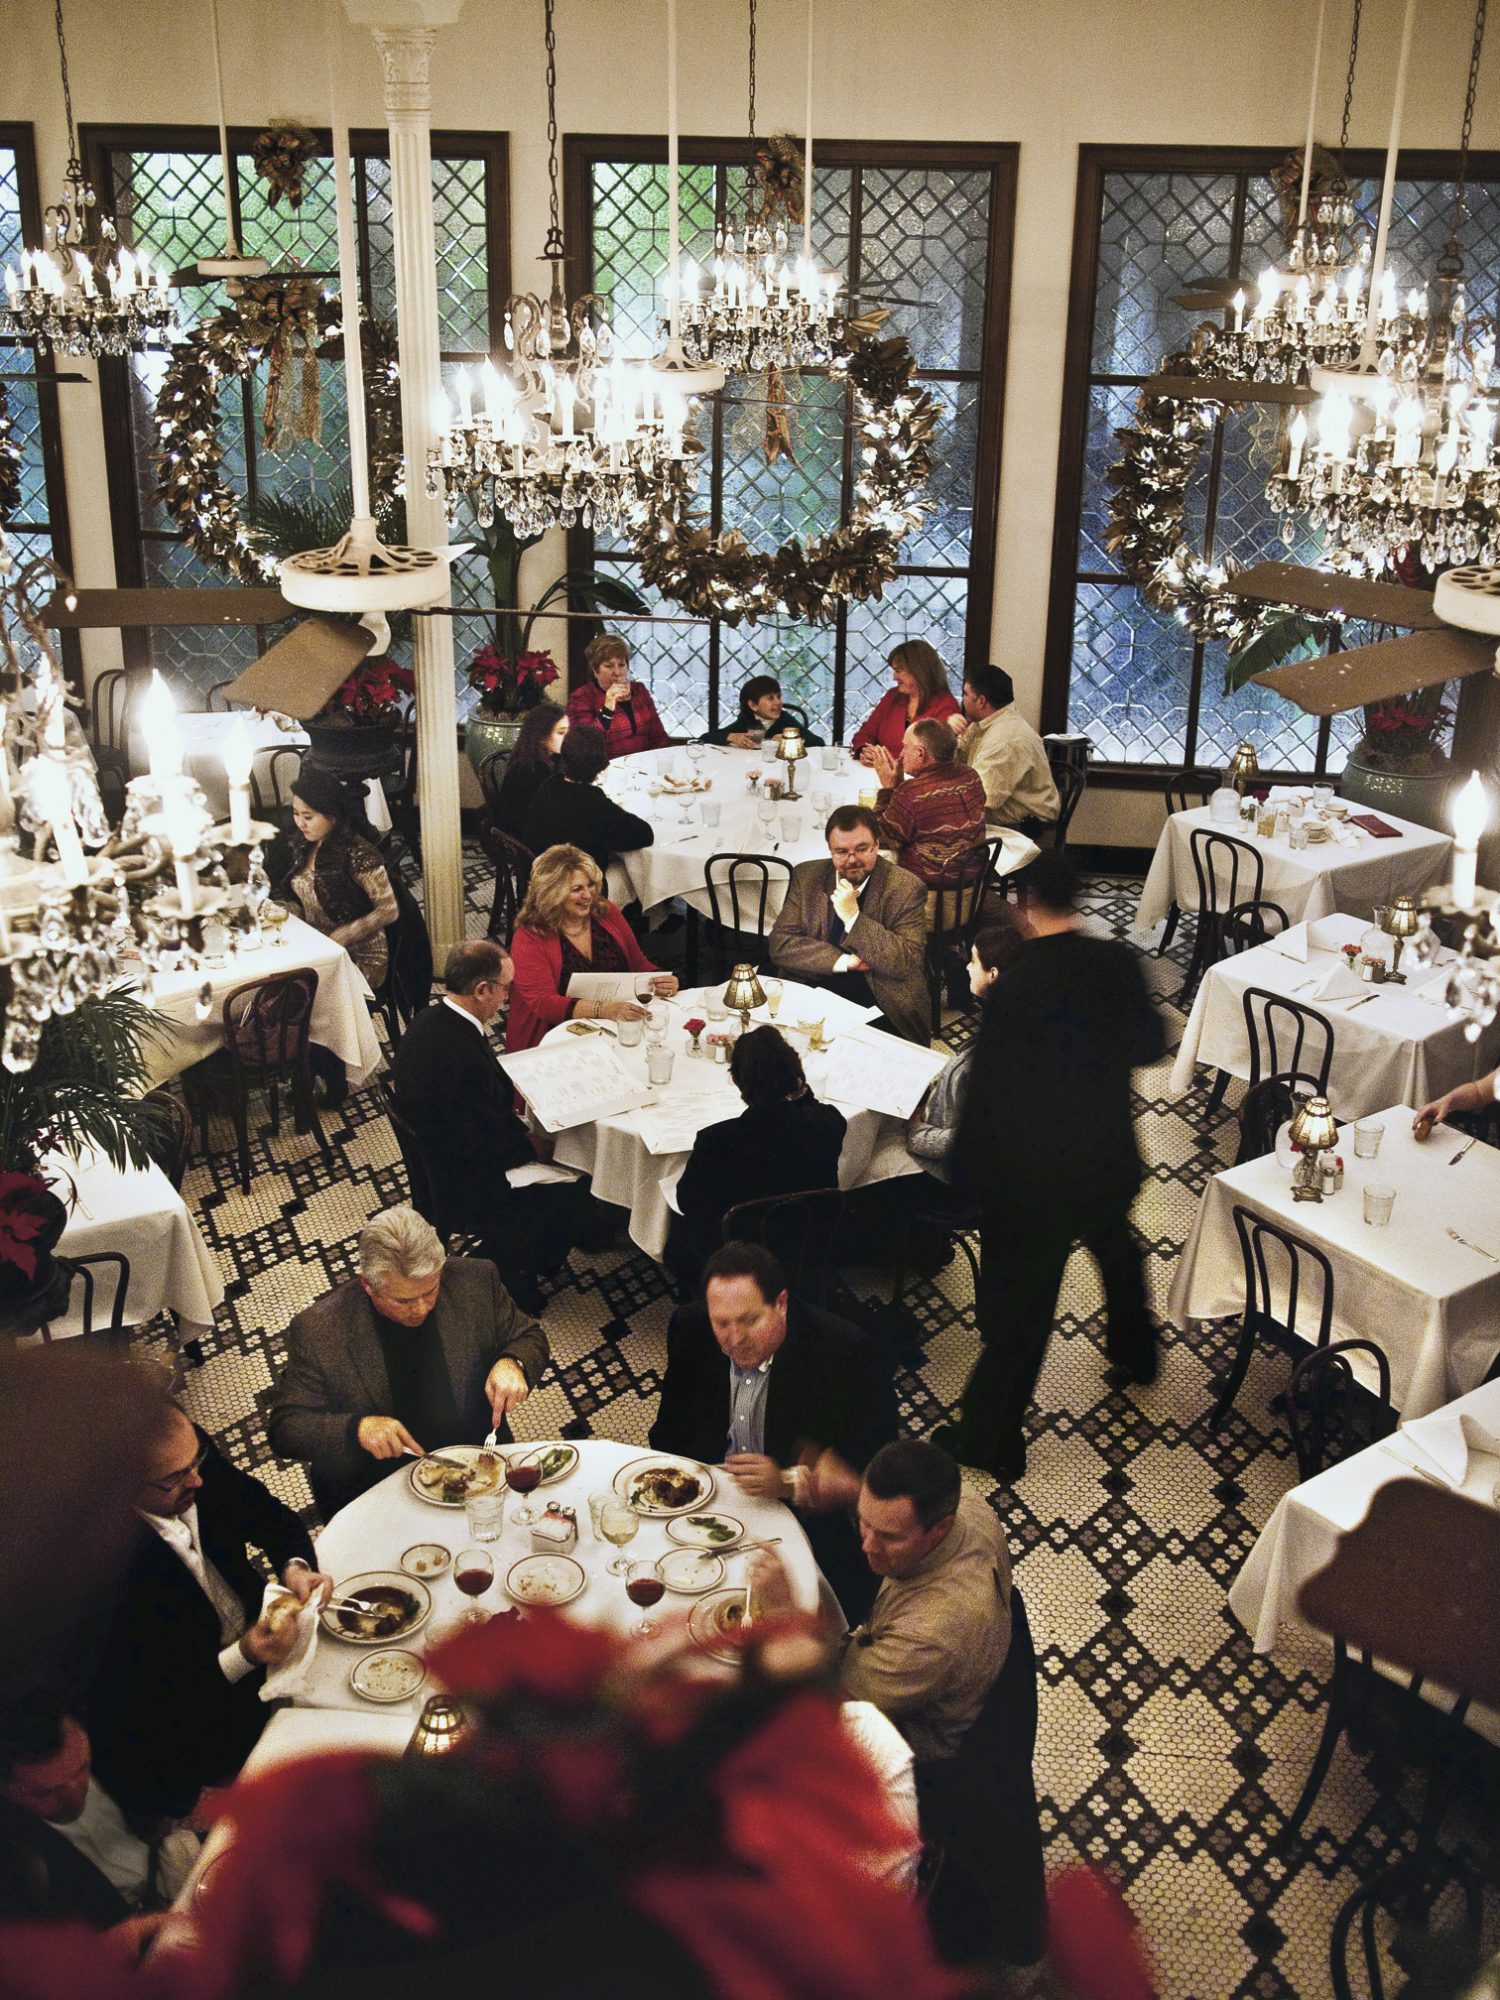 Arnaud's Restaurant showing people sitting at dining tables during Reveillon Dinner.